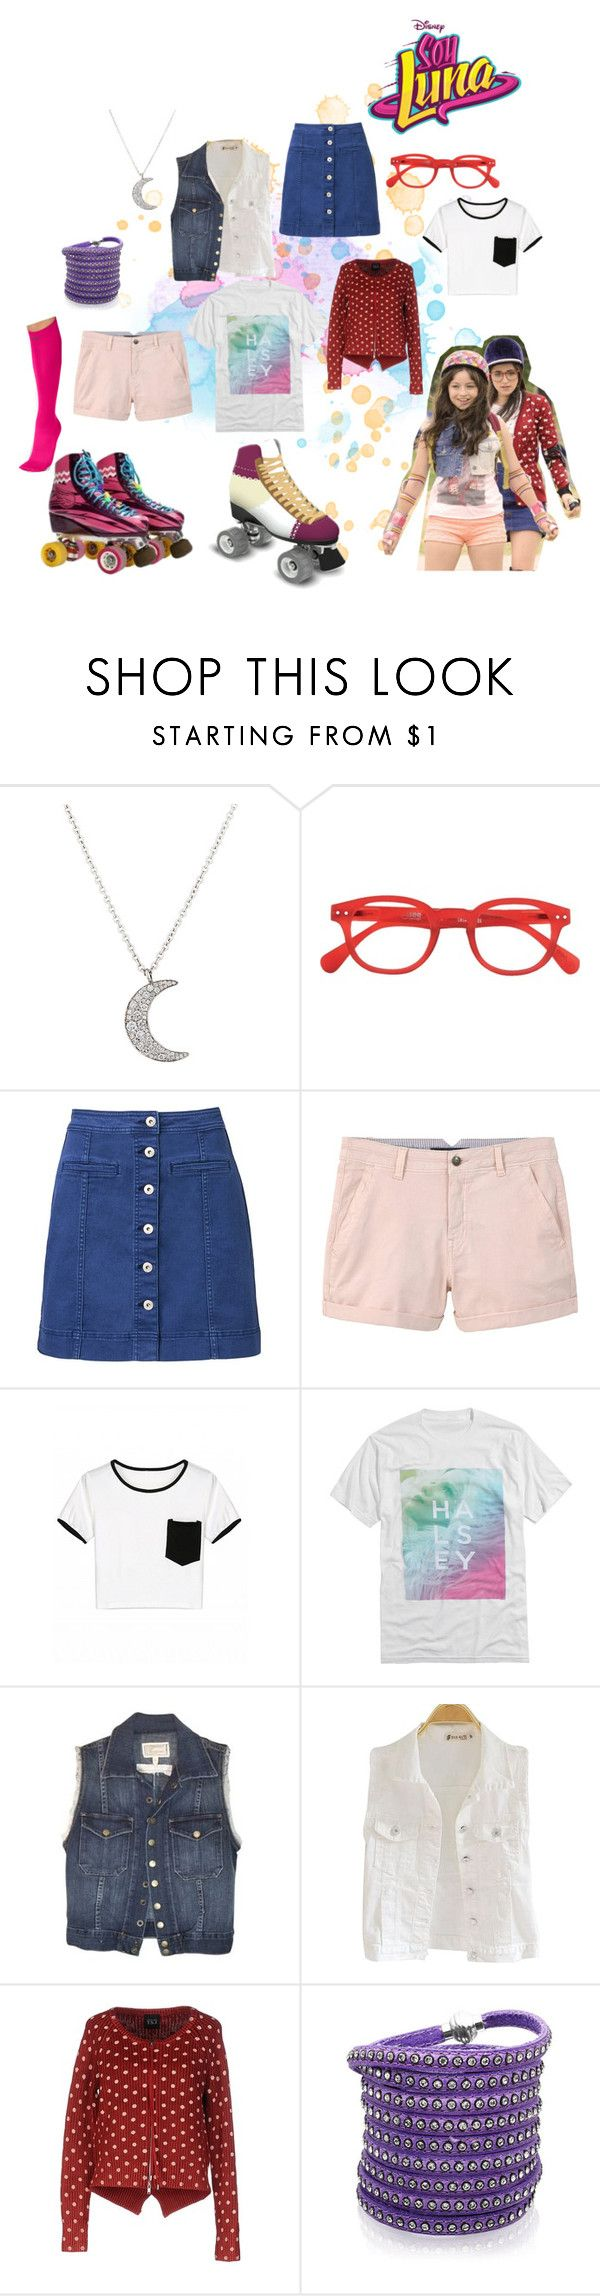 """soy luna"" by maria-look on Polyvore featuring Finn, See Concept, Witchery, MANGO, Current/Elliott, Twin-Set, Sif Jakobs Jewellery and Pretty Polly"